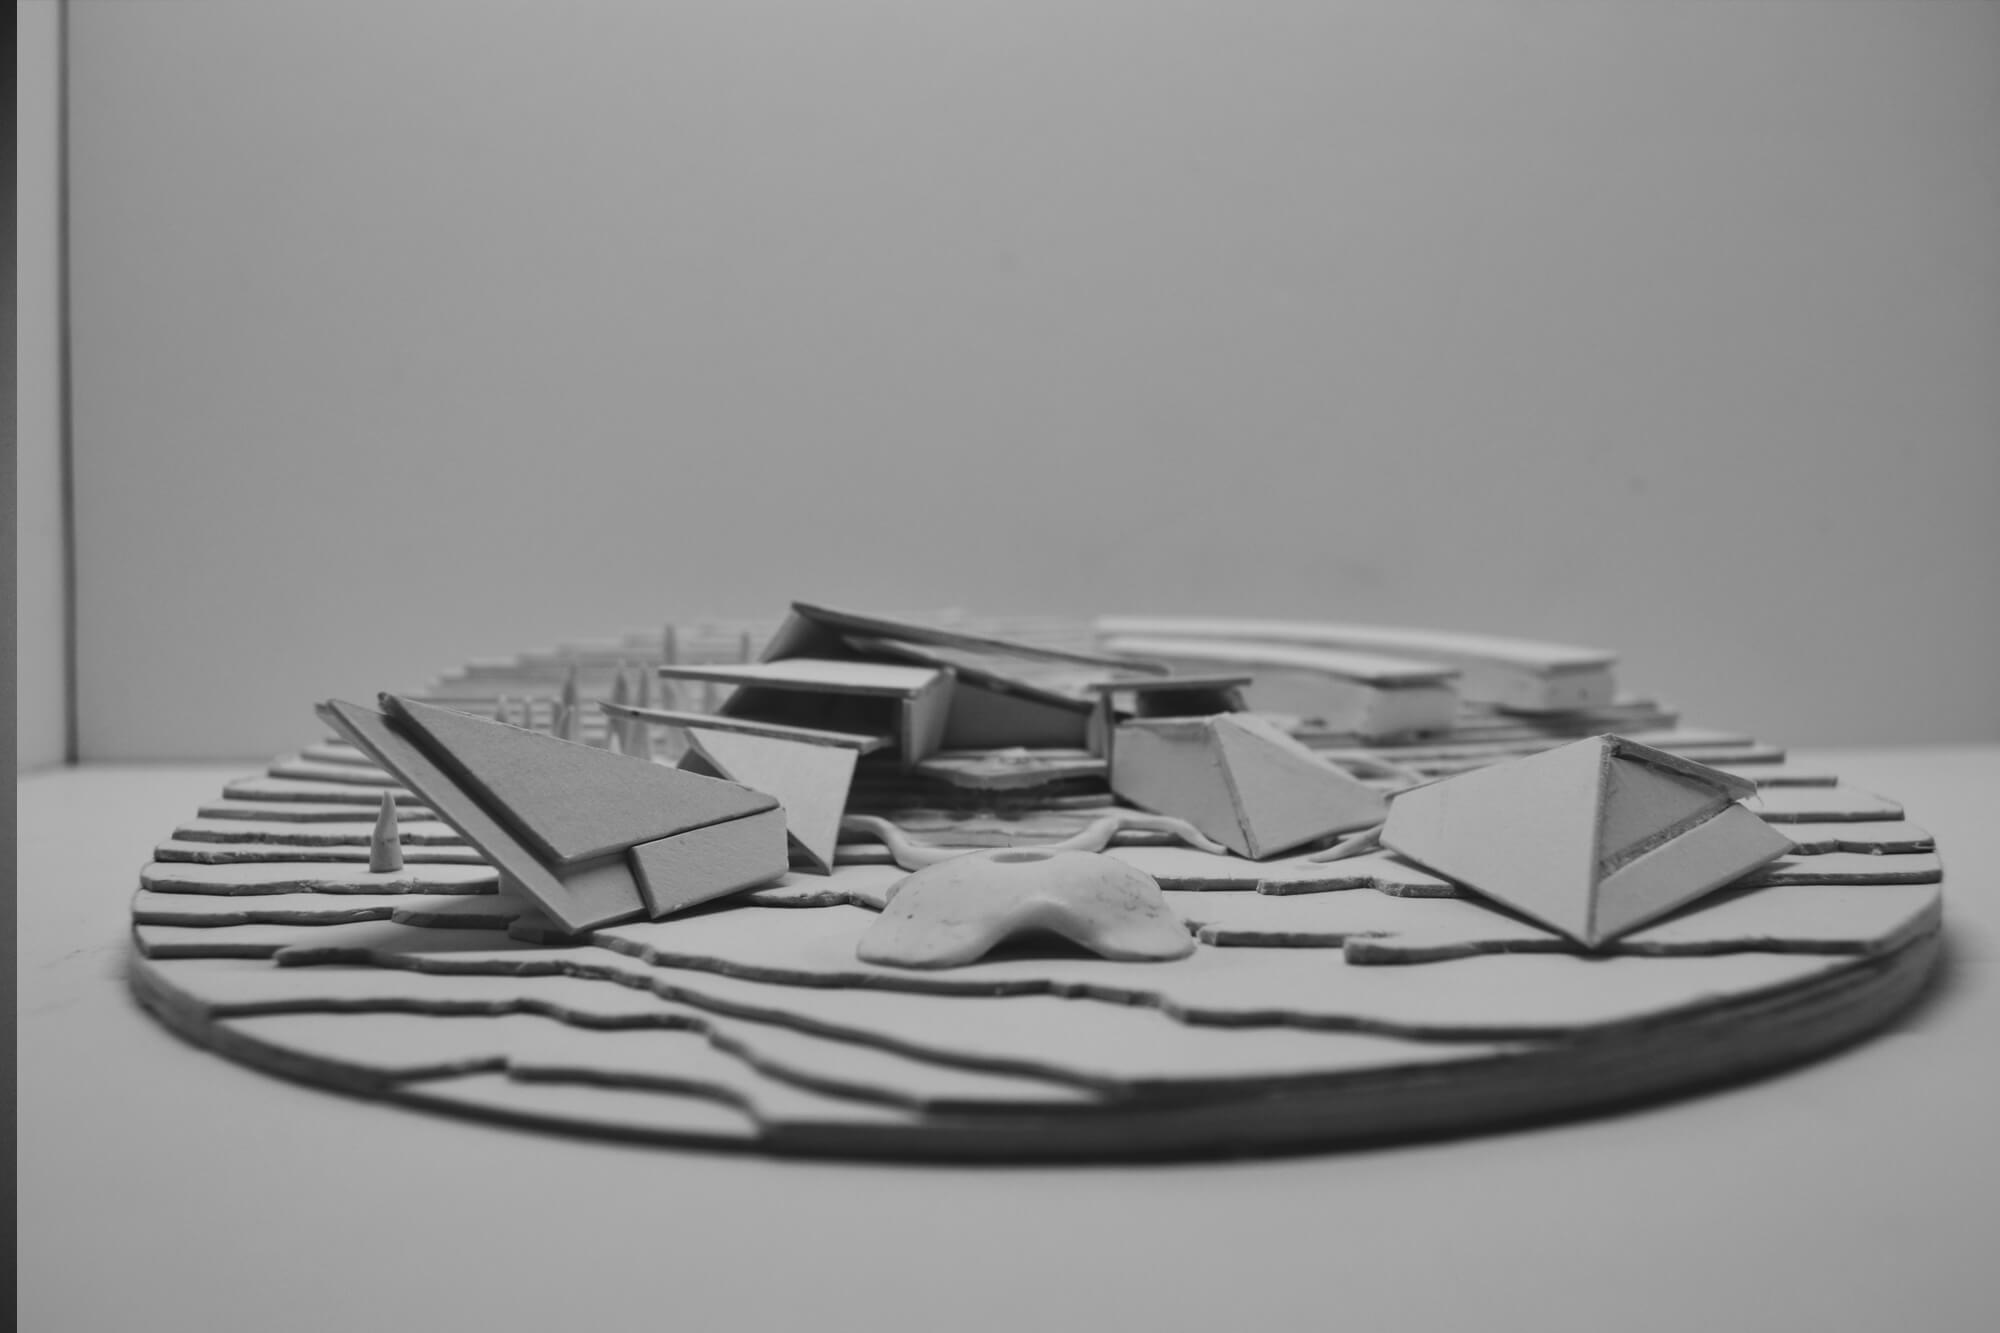 A 3d model of the Peak Gateway in black and white